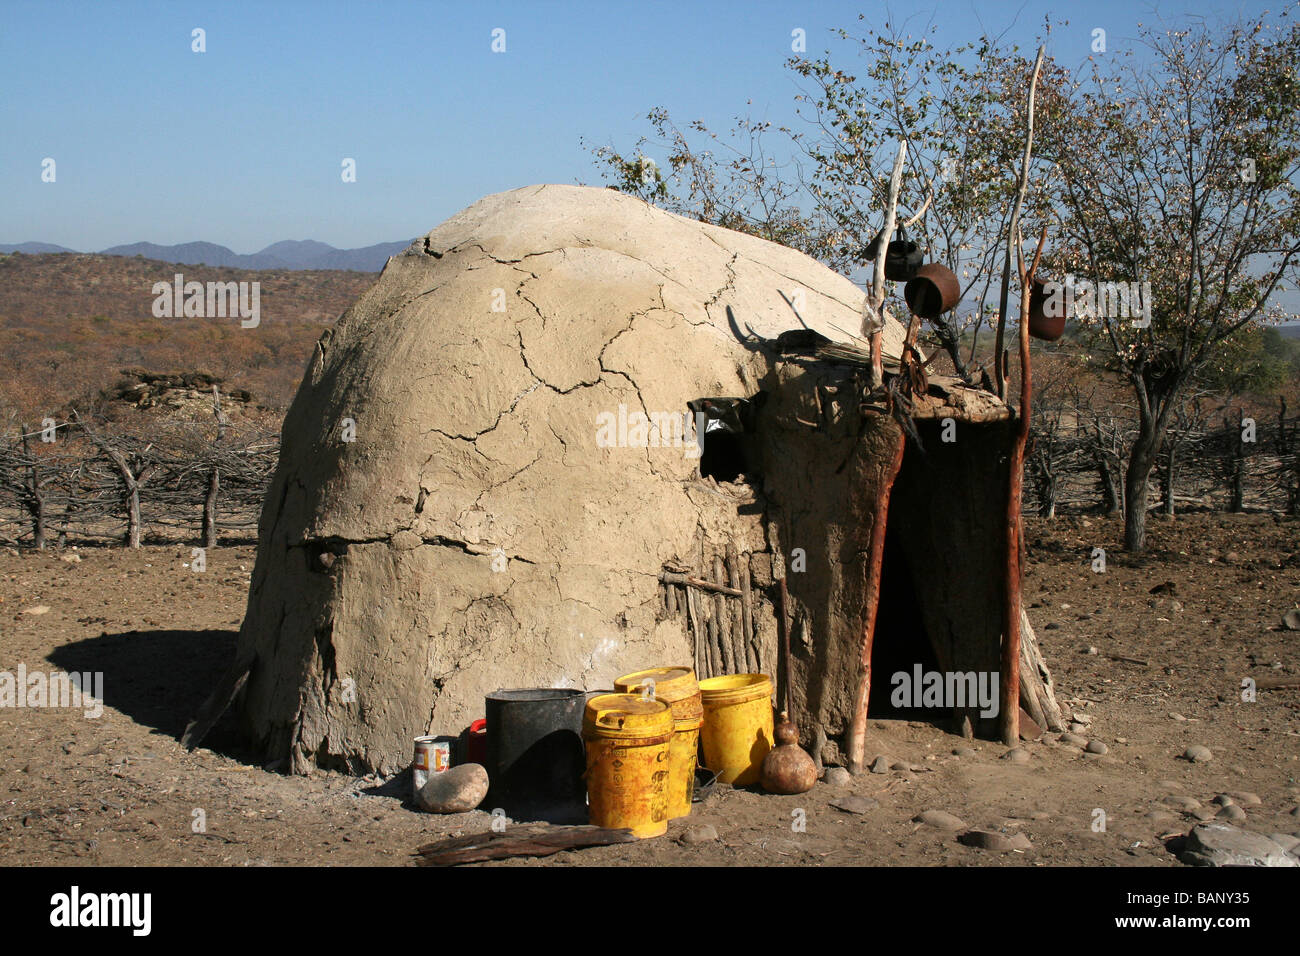 Traditional Himba Hut In Village (Kraal), Kunene River, Namibia, Africa - Stock Image